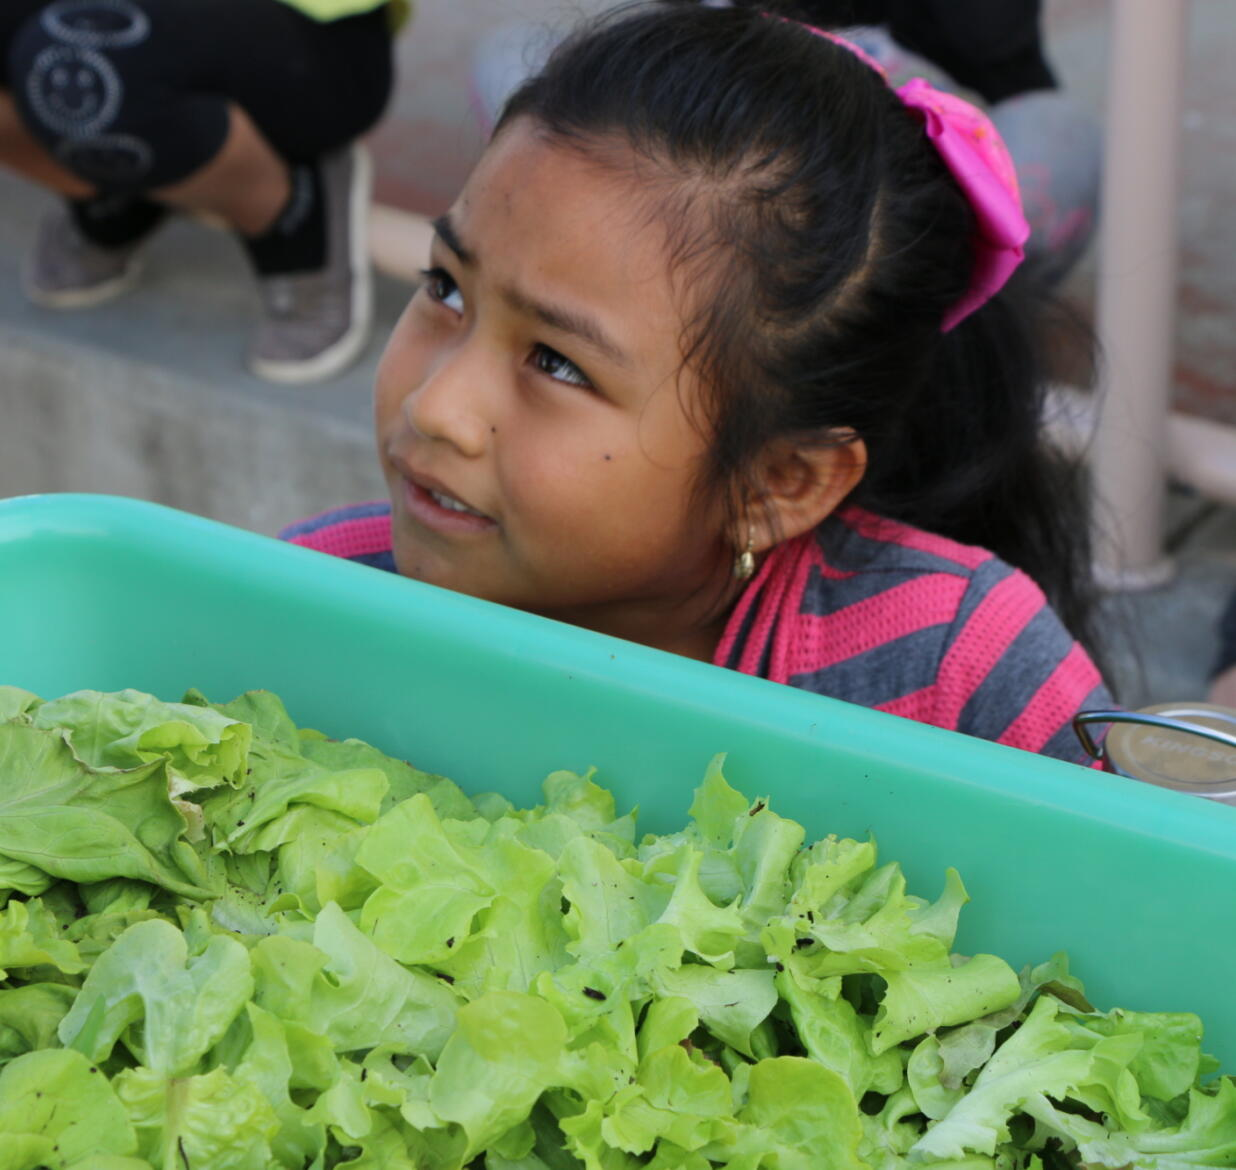 Reinventing Healthy Eating with Salad Bars to Schools